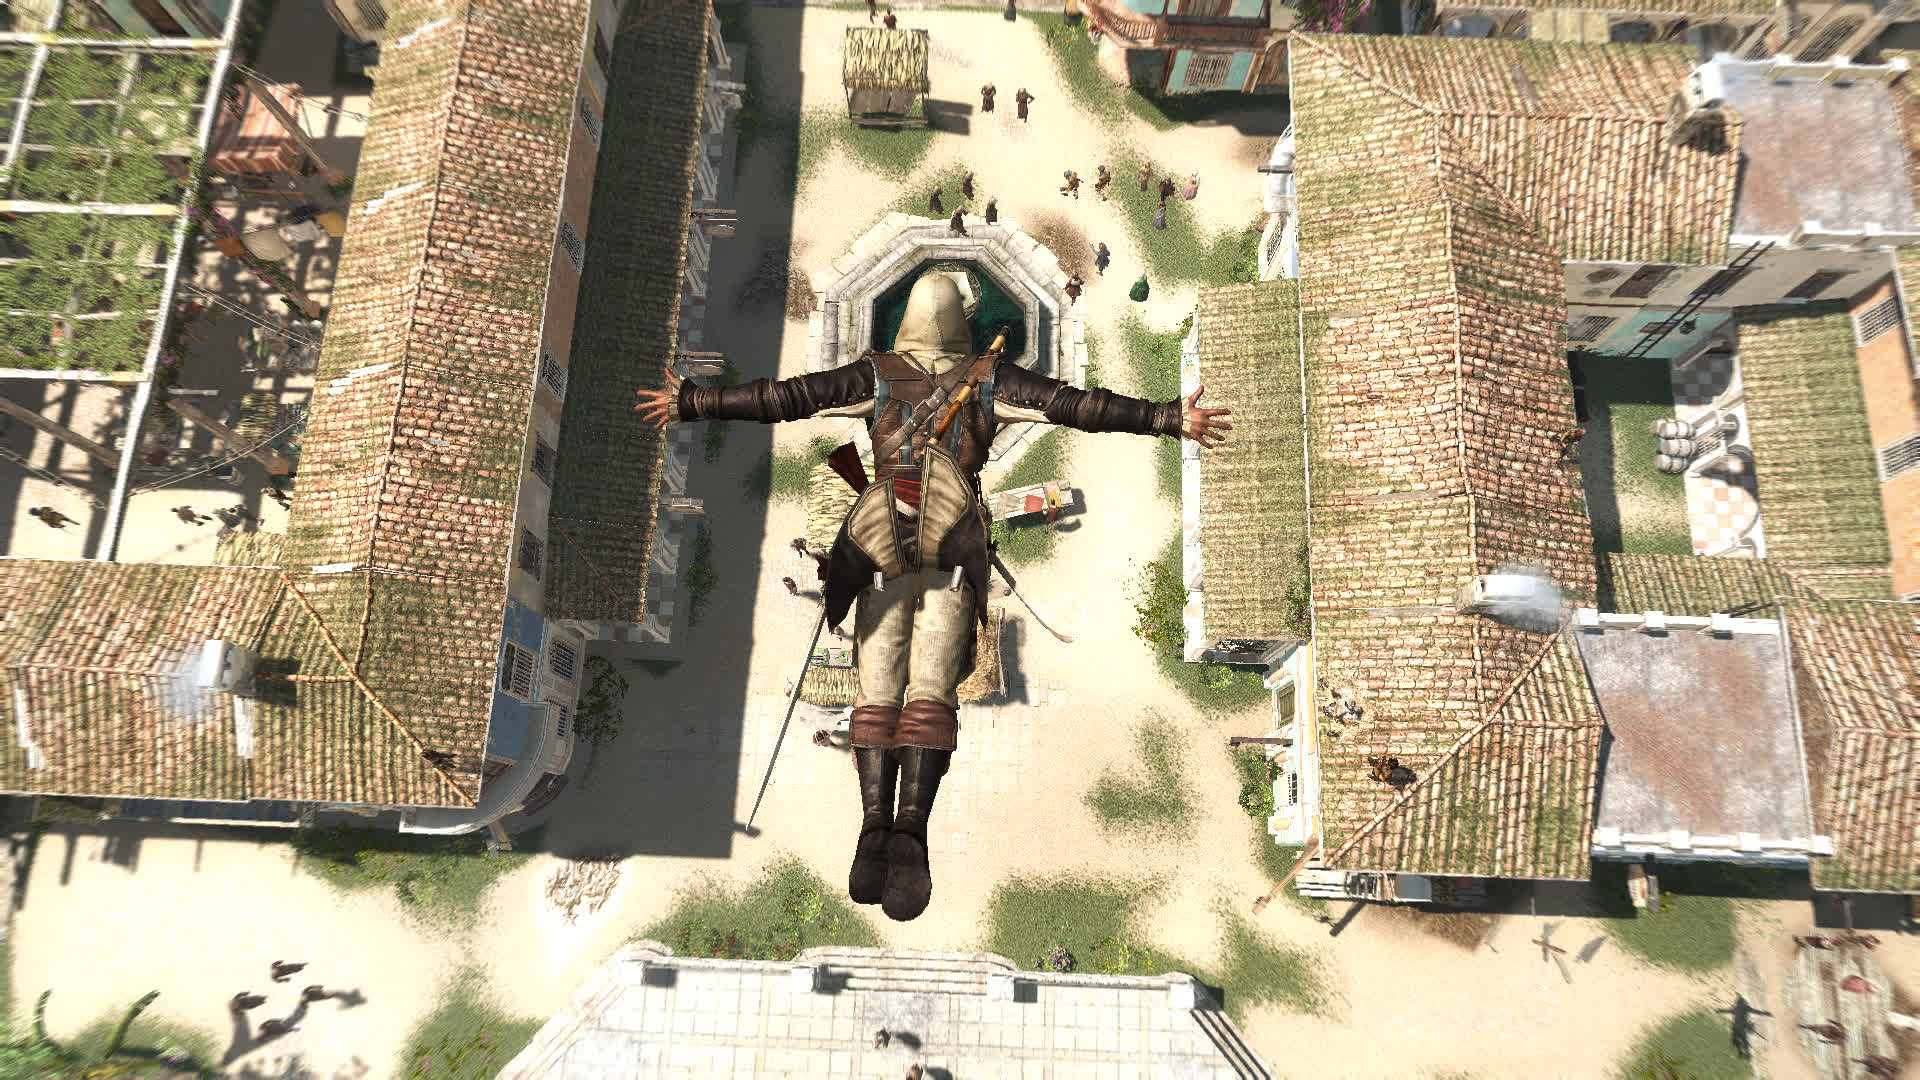 Ubisoft takes a leap of faith with online-only Assassin's Creed game